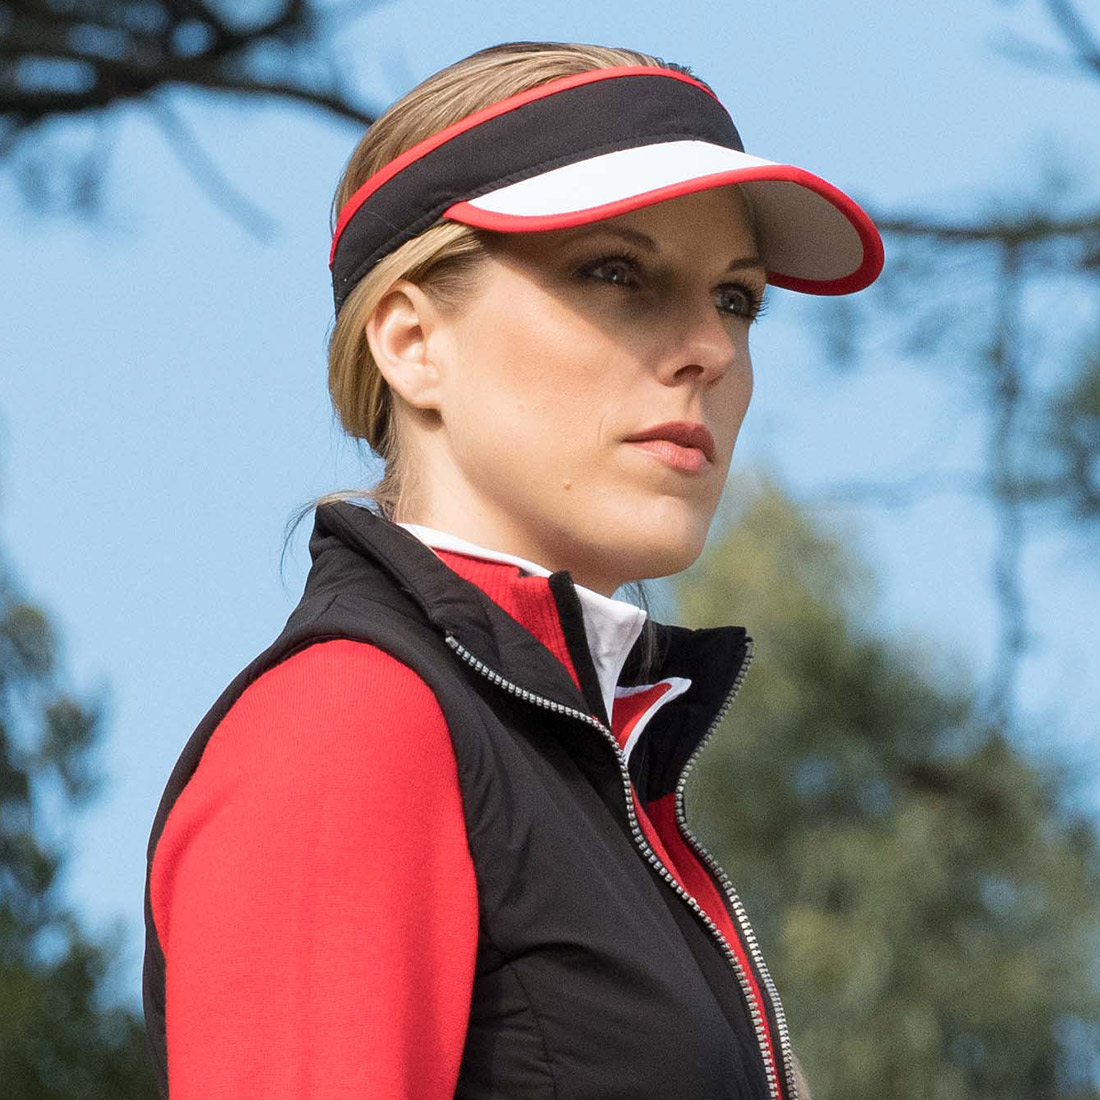 Performance Damen Golf-Visor mit elastischem Band Onesize